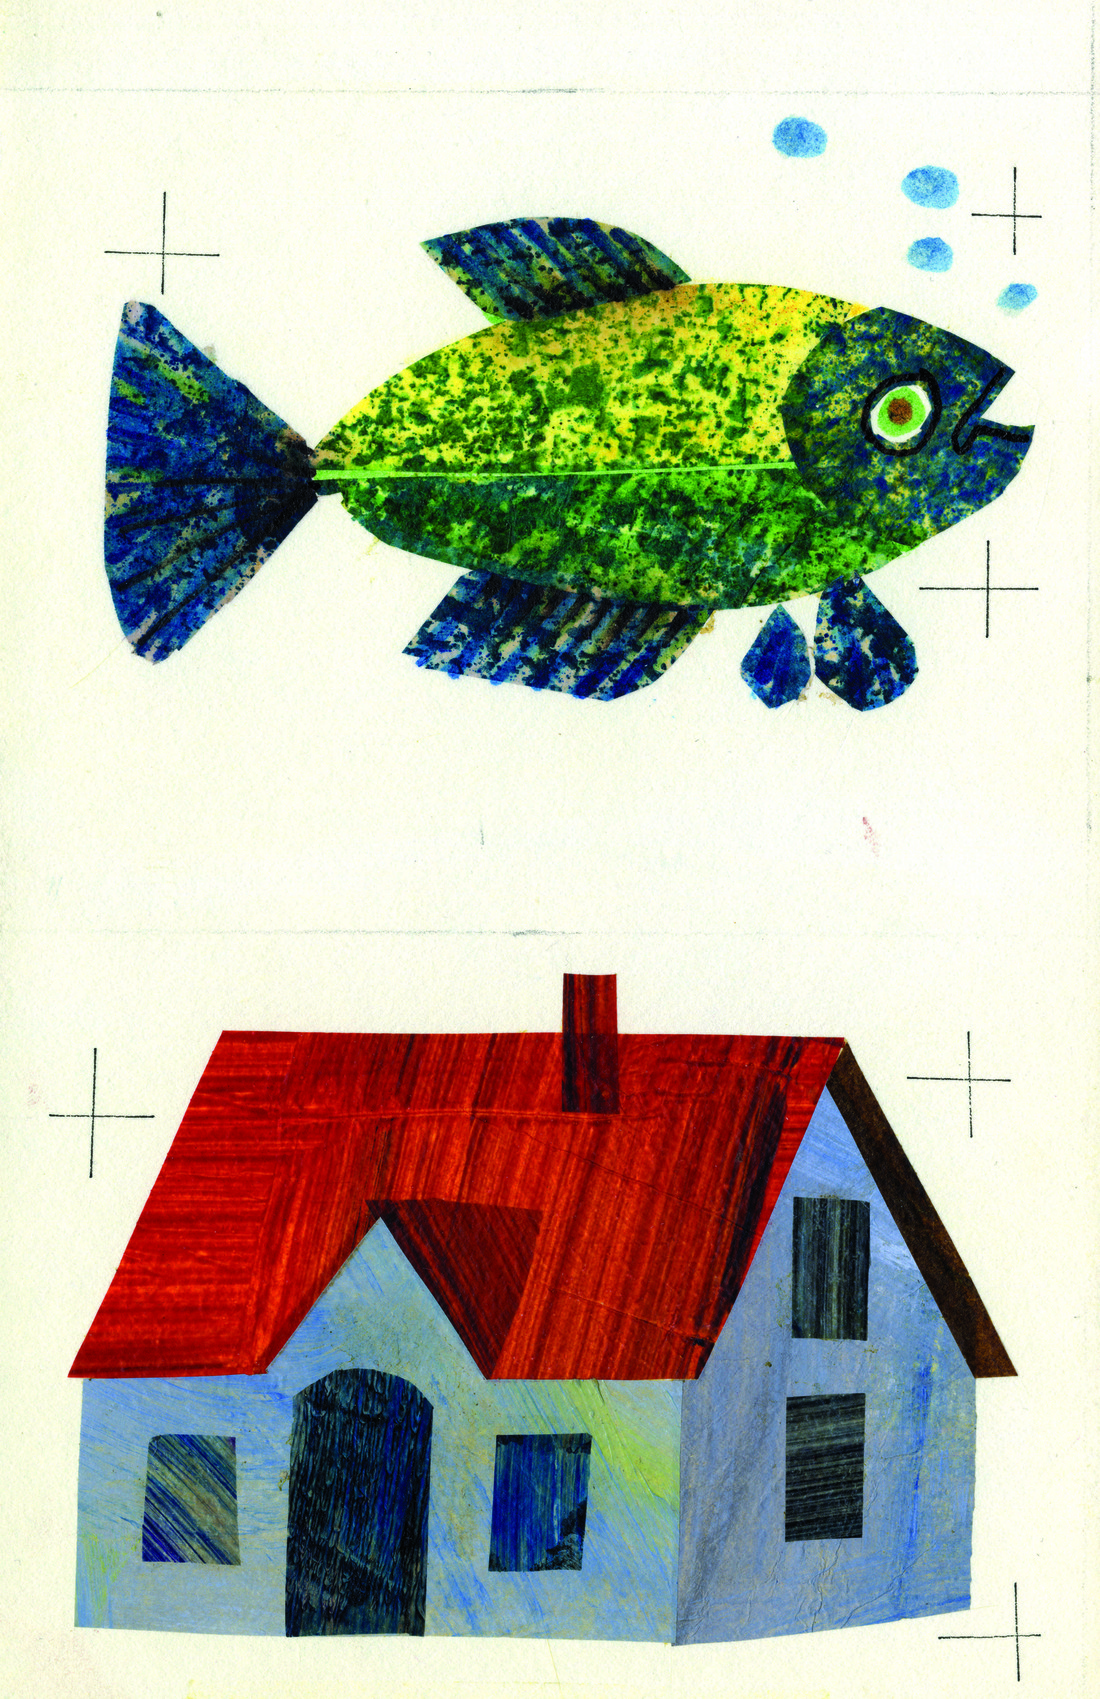 Image of a fish on top and of a house on the bottom